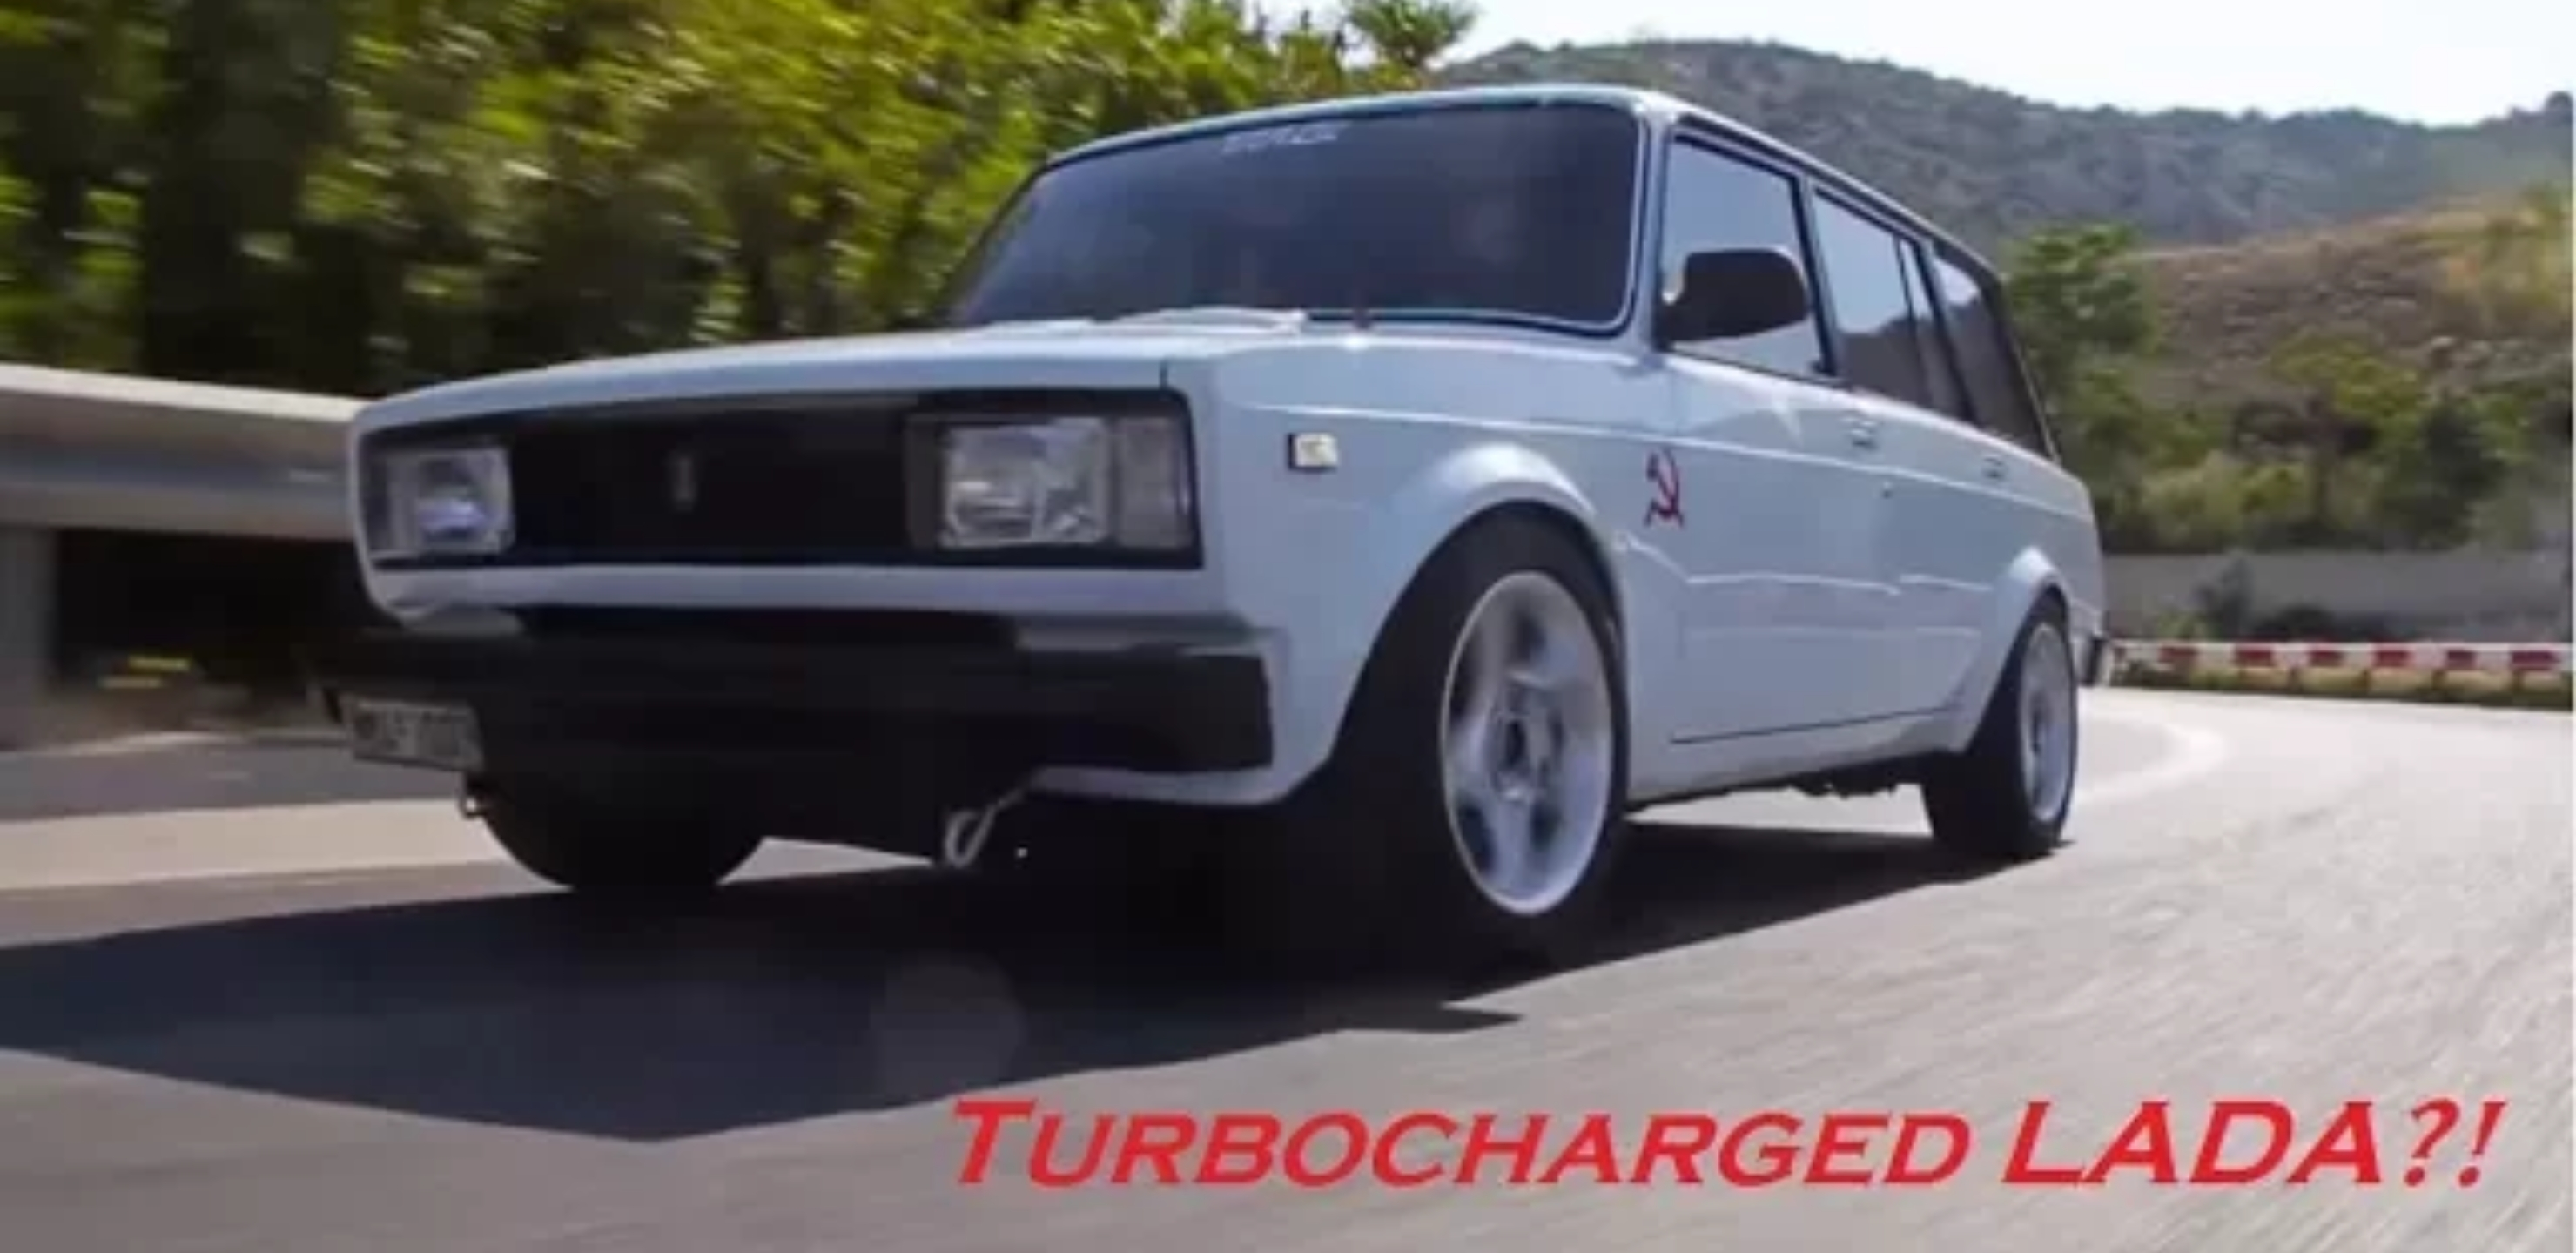 Lada sr20det Archieven - Turbo and Stance